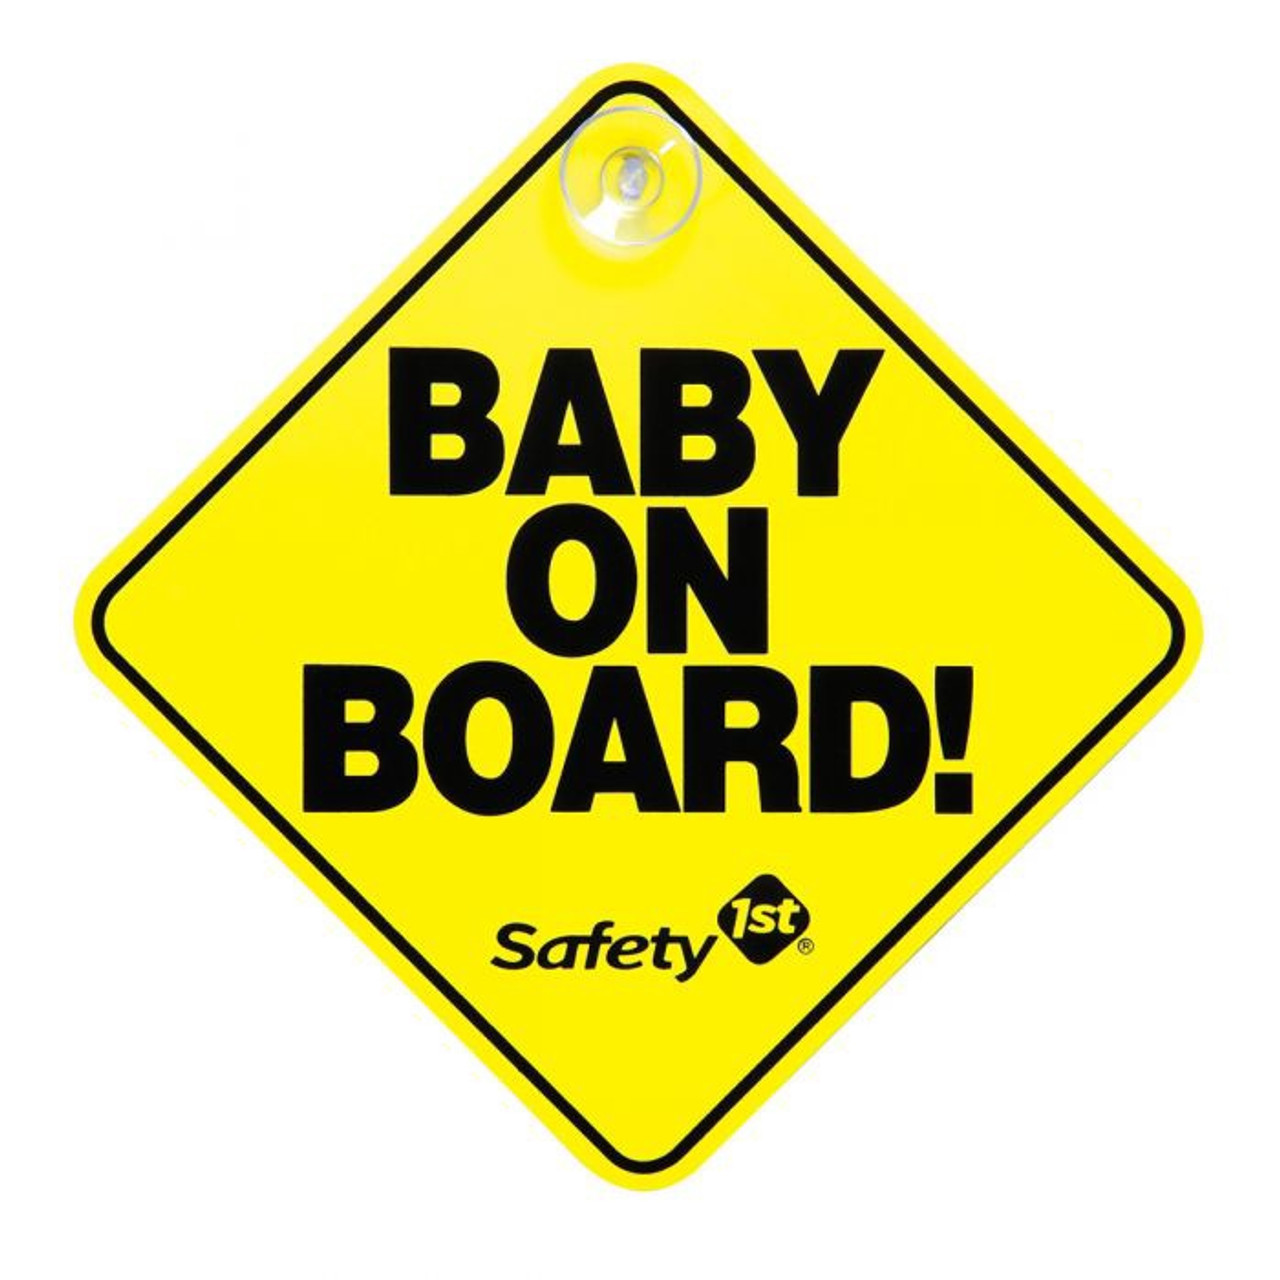 Safety 1st Baby On Board Sign at Baby Barn Discounts Safety 1st yellow bright Baby On Board sign, a visible vehicle signage on the road.